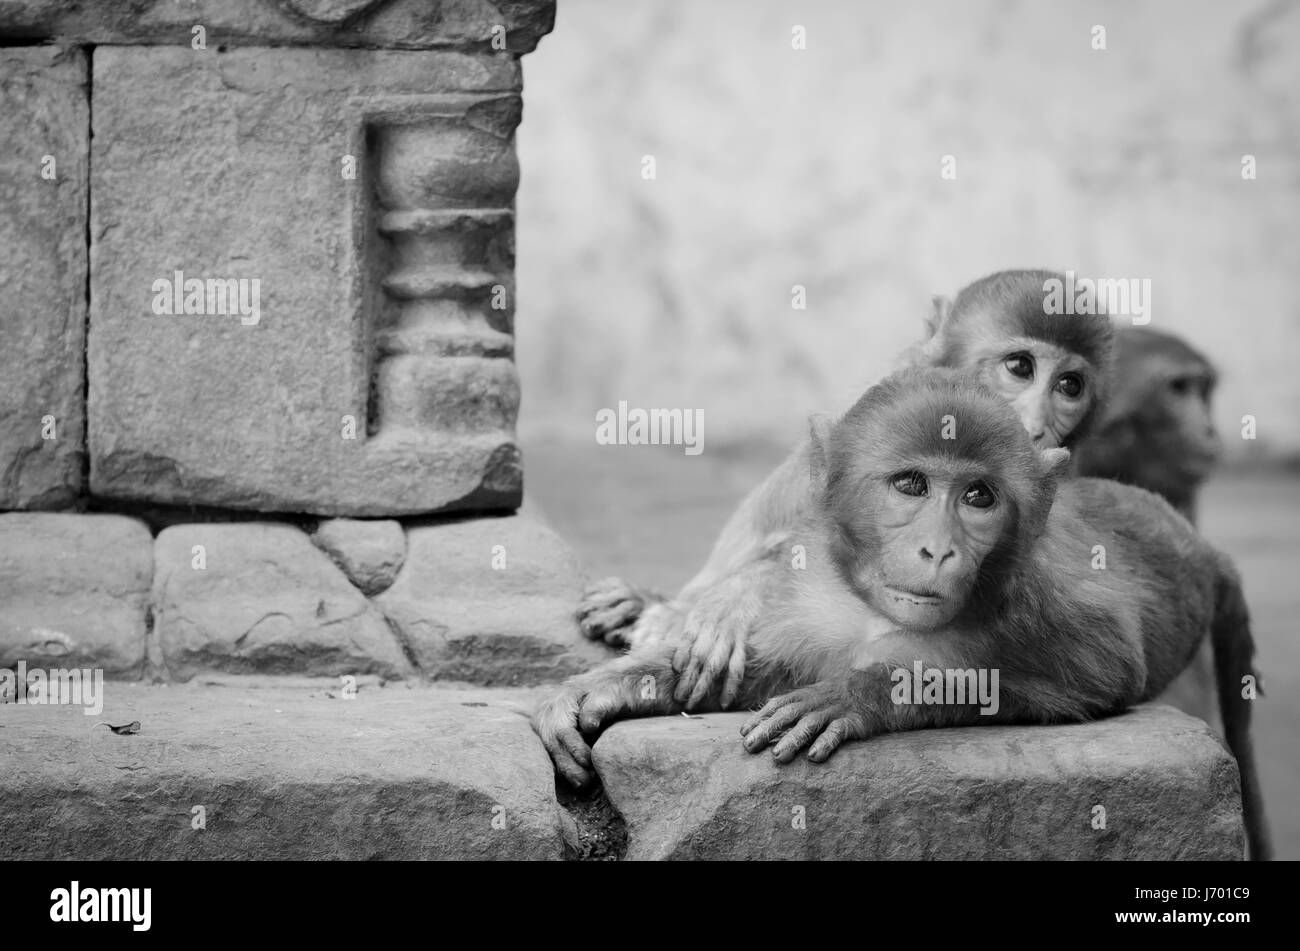 monochrome picture of monkeys playing at an Indian temple Stock Photo